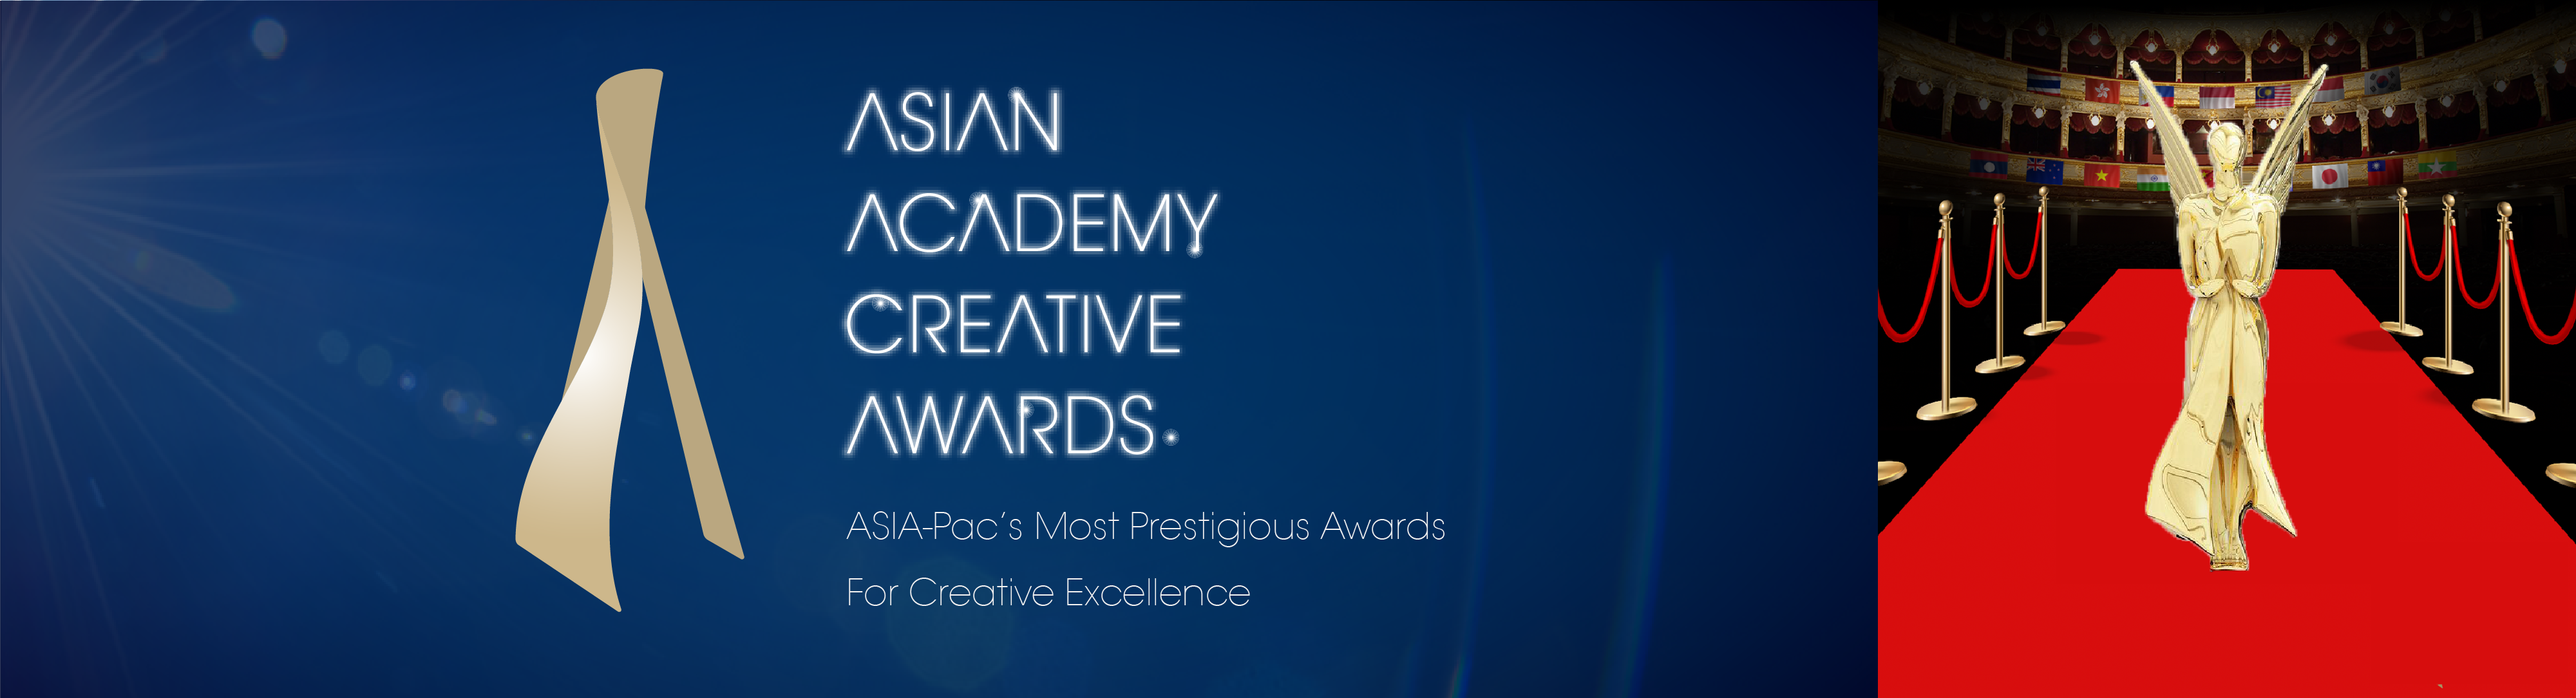 Asian Academy Creative Awards 2018 Banner Image